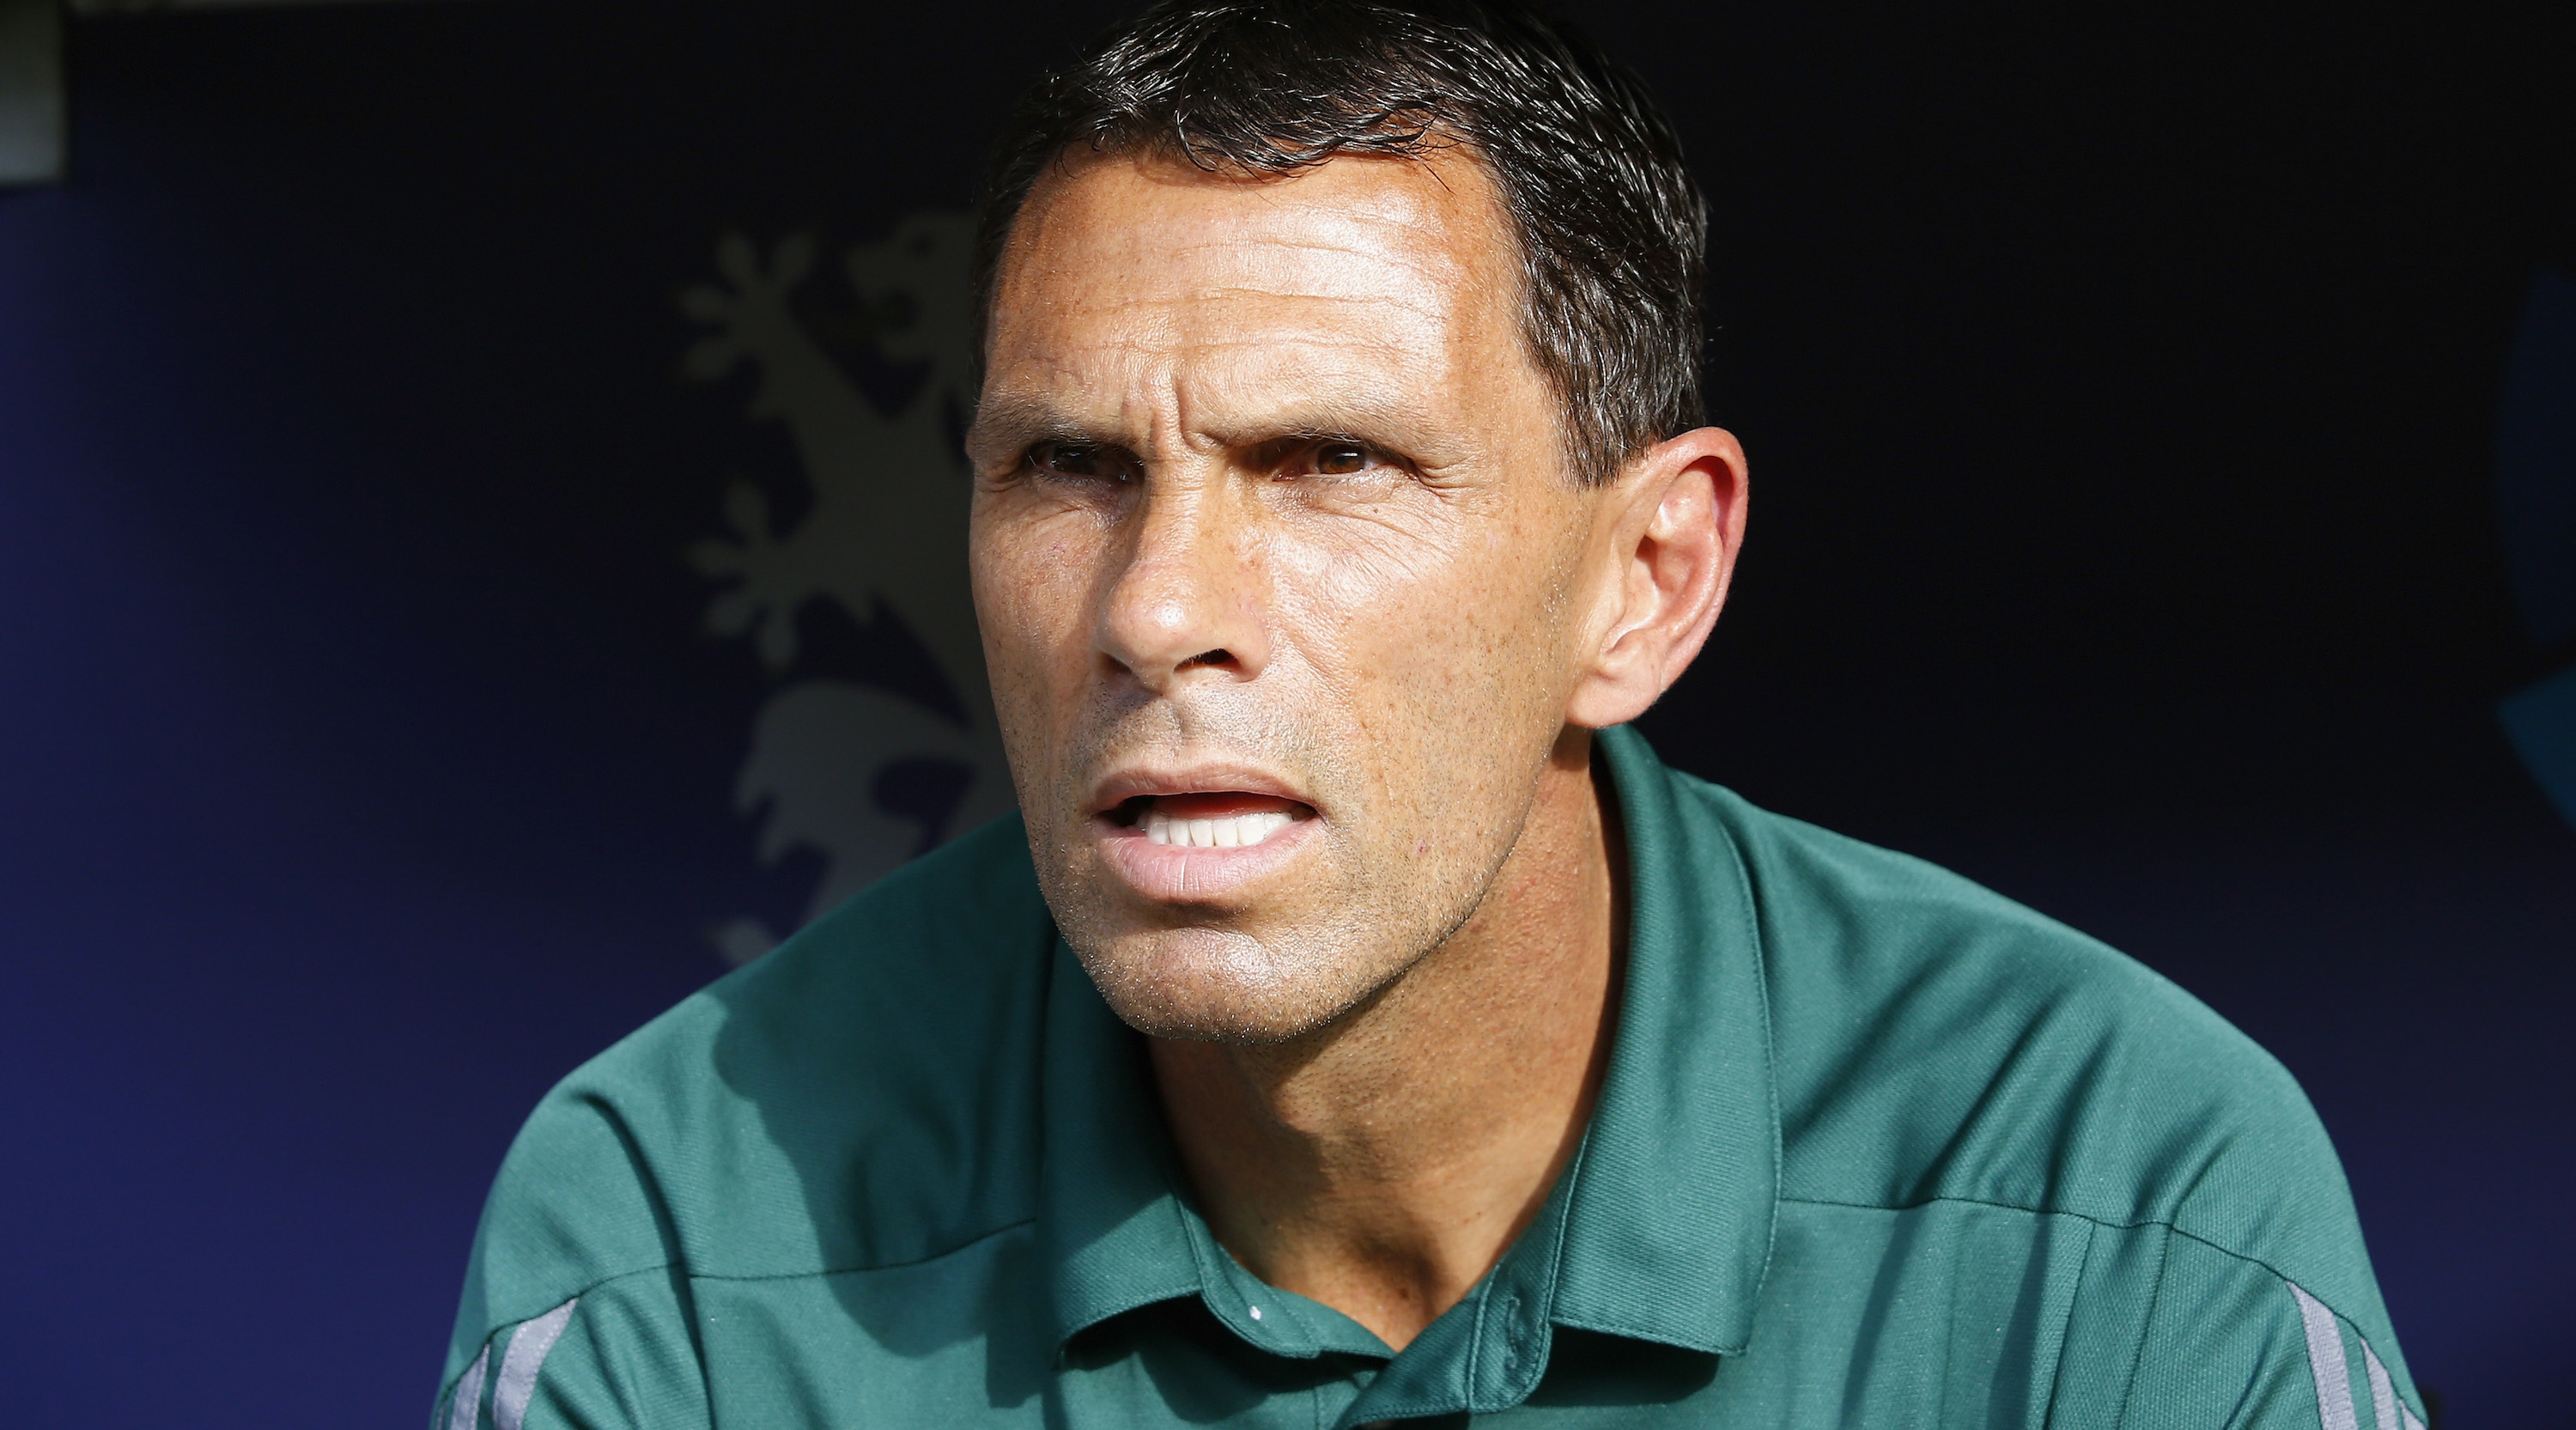 DRESDEN, GERMANY - JULY 29: Head coach Gustavo Poyet of Real Betis looks on prior to the Bundeswehr Karriere Cup Dresden 2016 match between Werder Bremen and Real Betis at DDV-Stadion on July 29, 2016 in Dresden, Germany. (Photo by Boris Streubel/Bongarts/Getty Images)